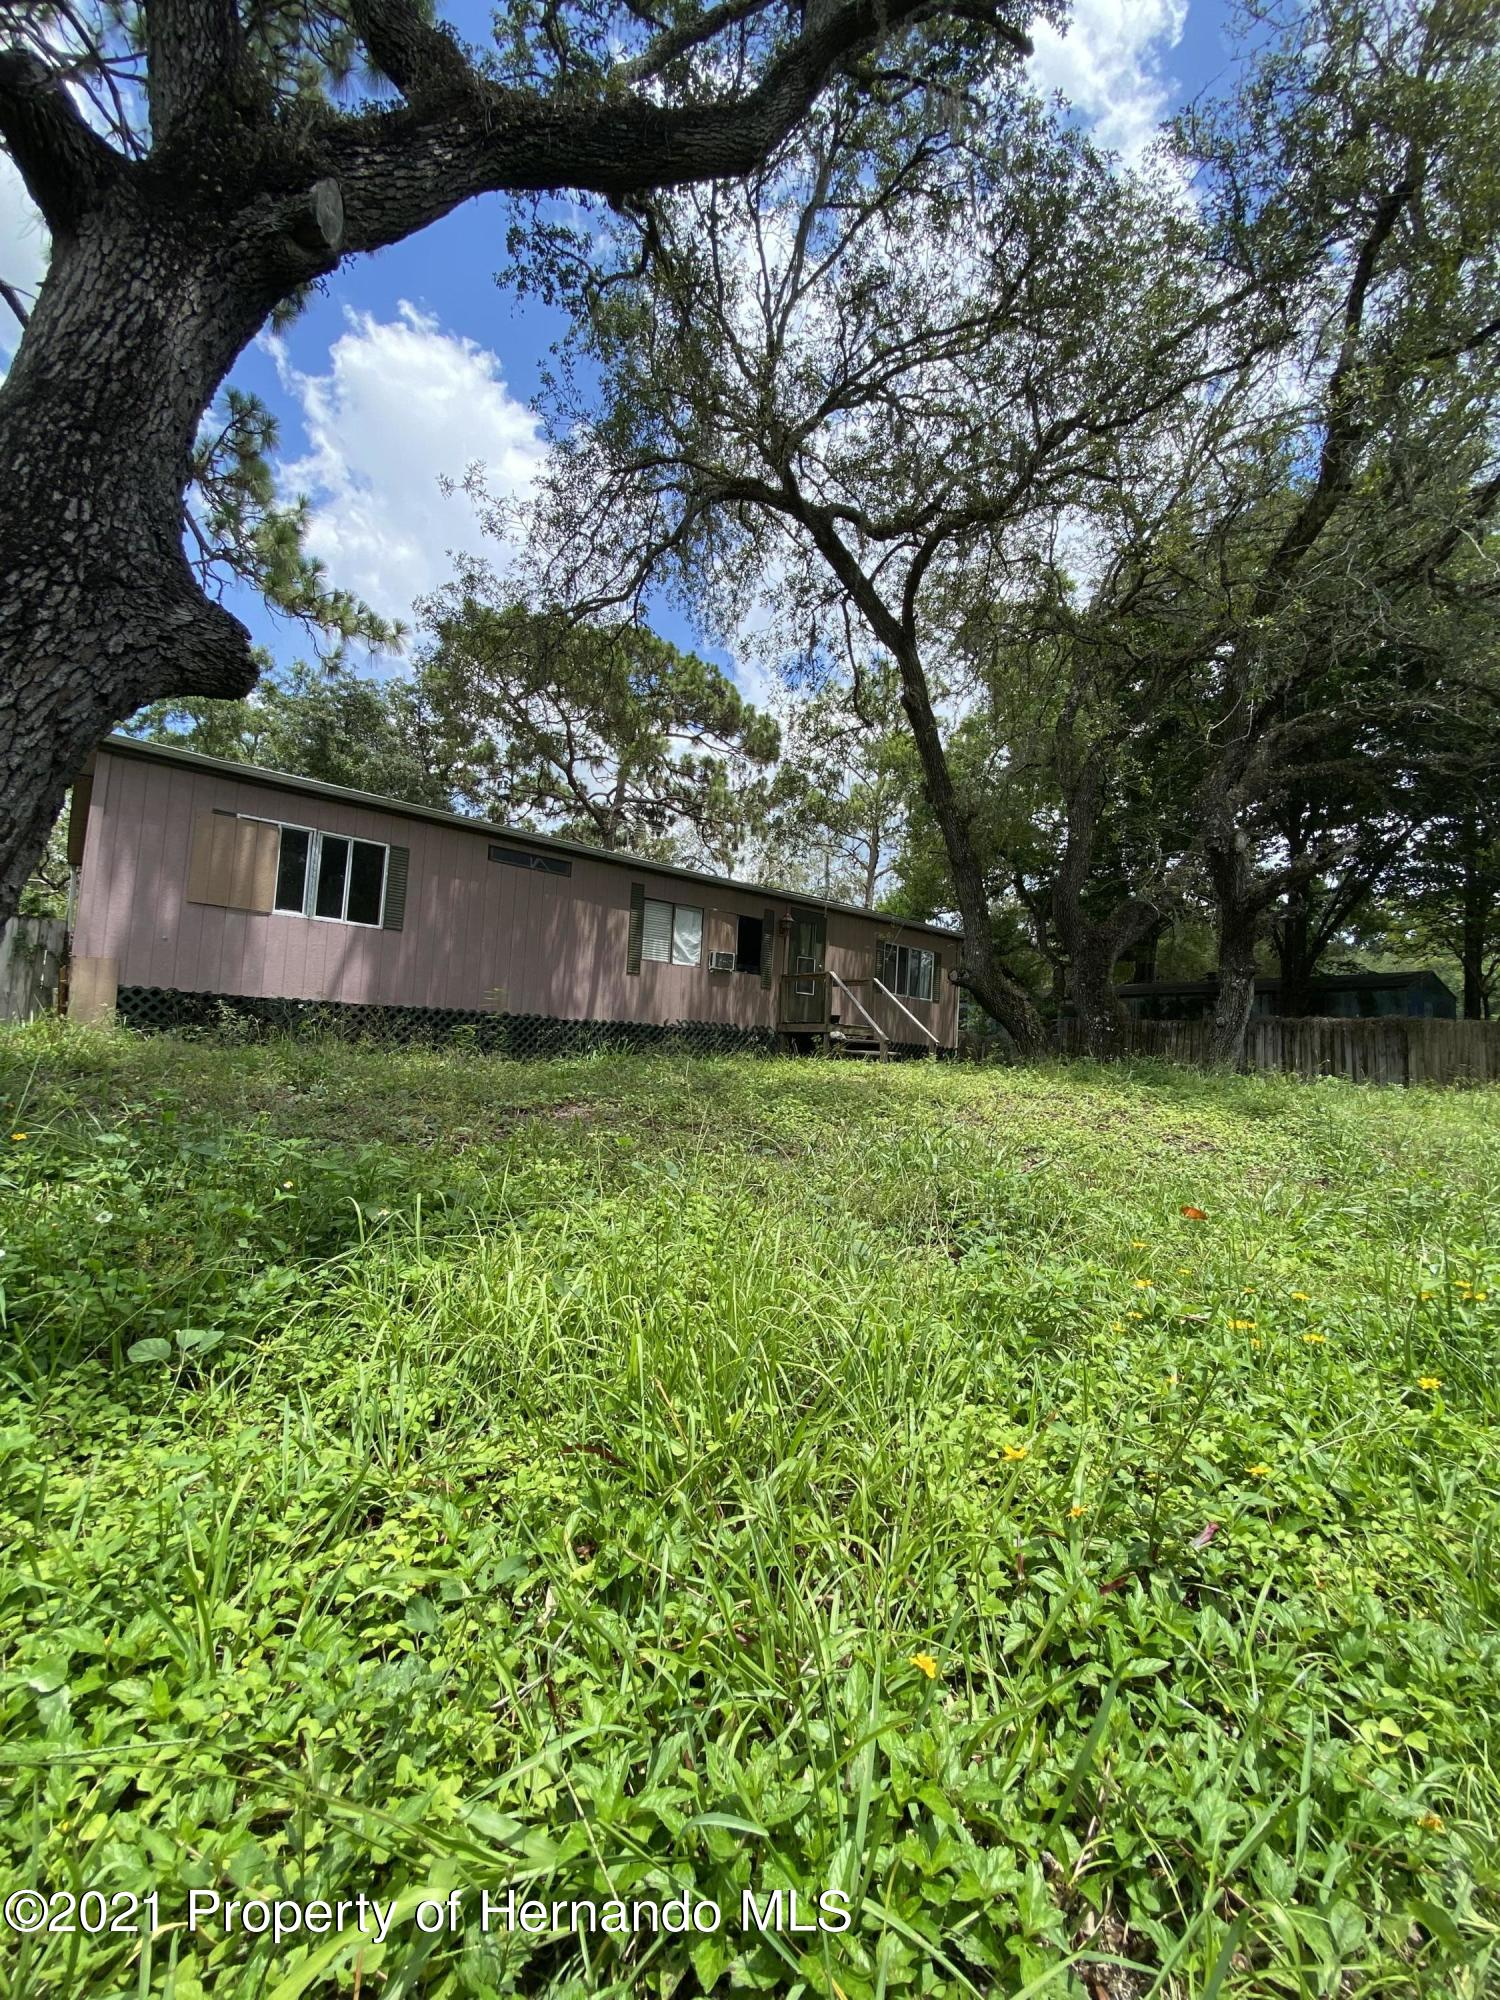 Details for 11304 Lake Drive, New Port Richey, FL 34654